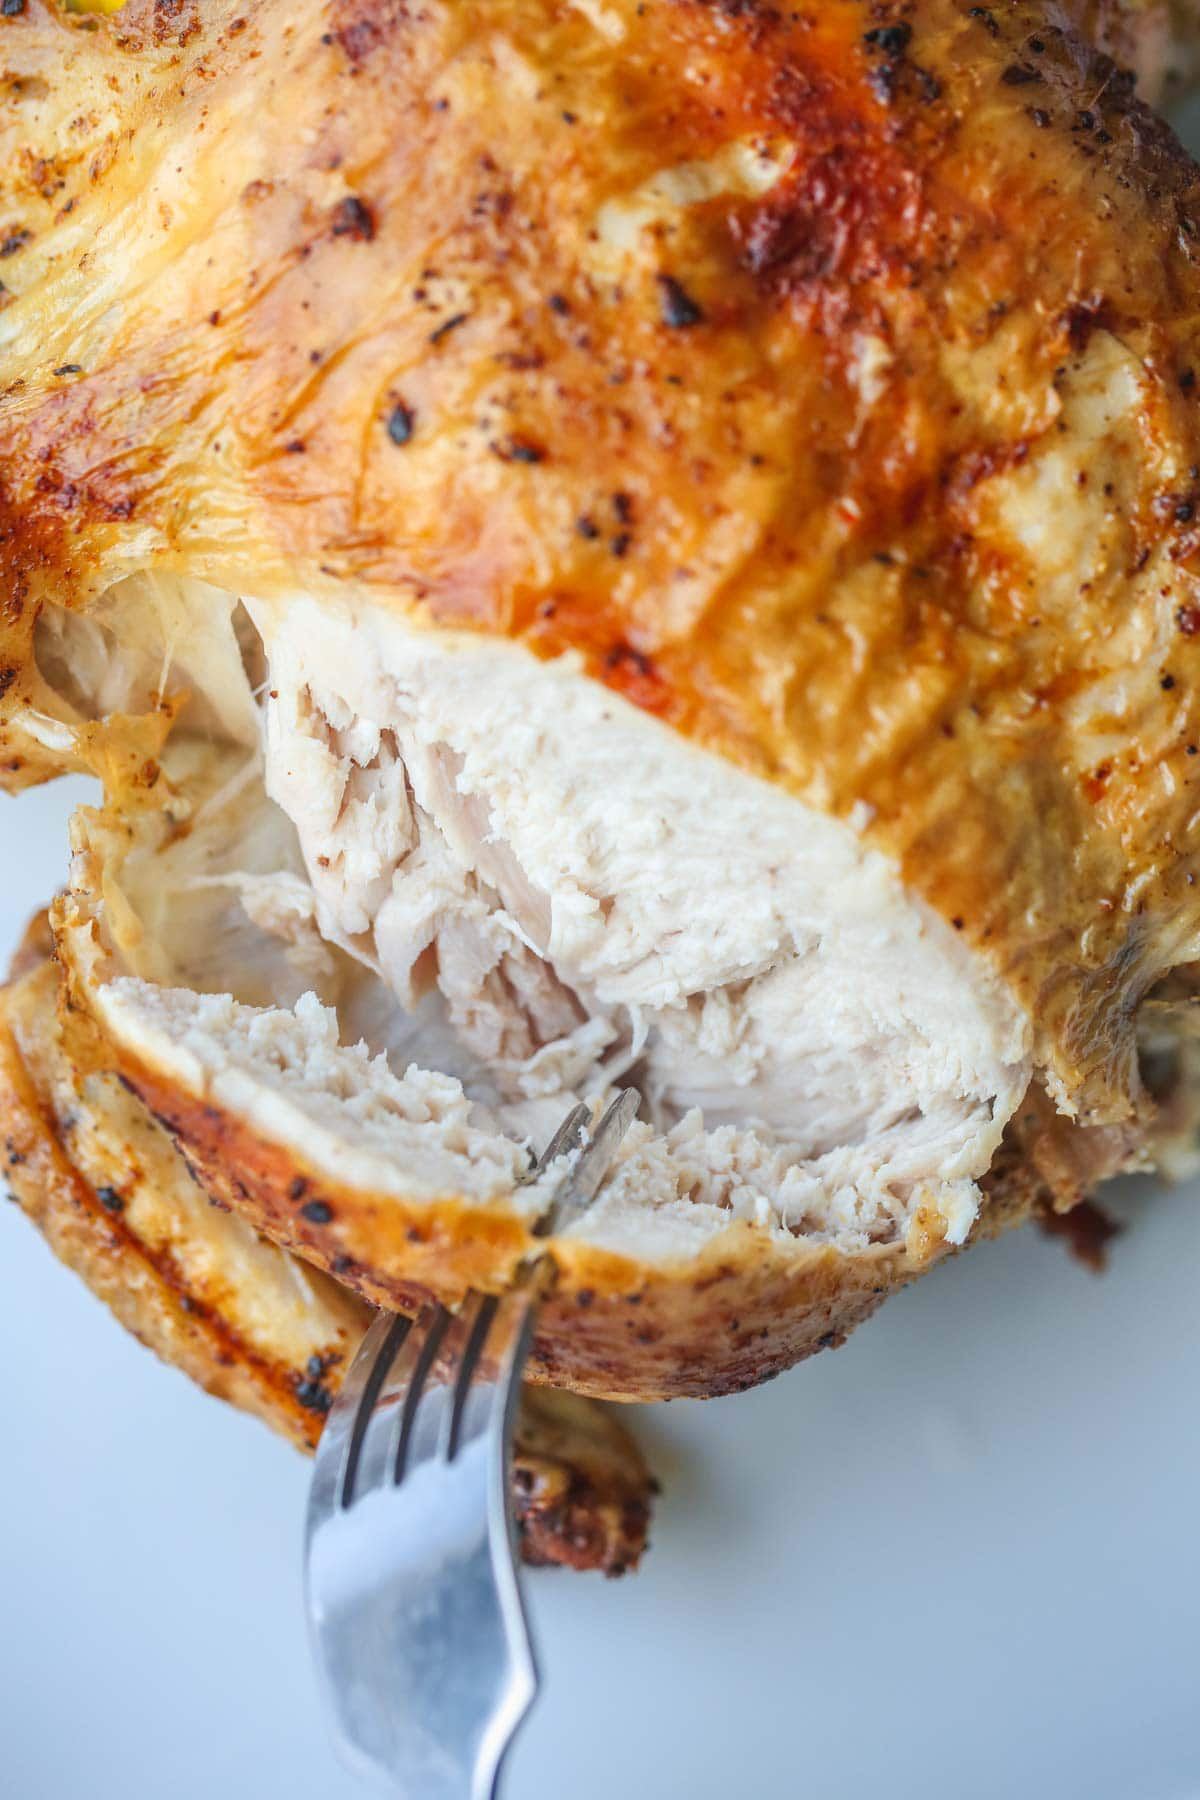 Cutting through the roast chicken breast, showing the doneness of the meat.